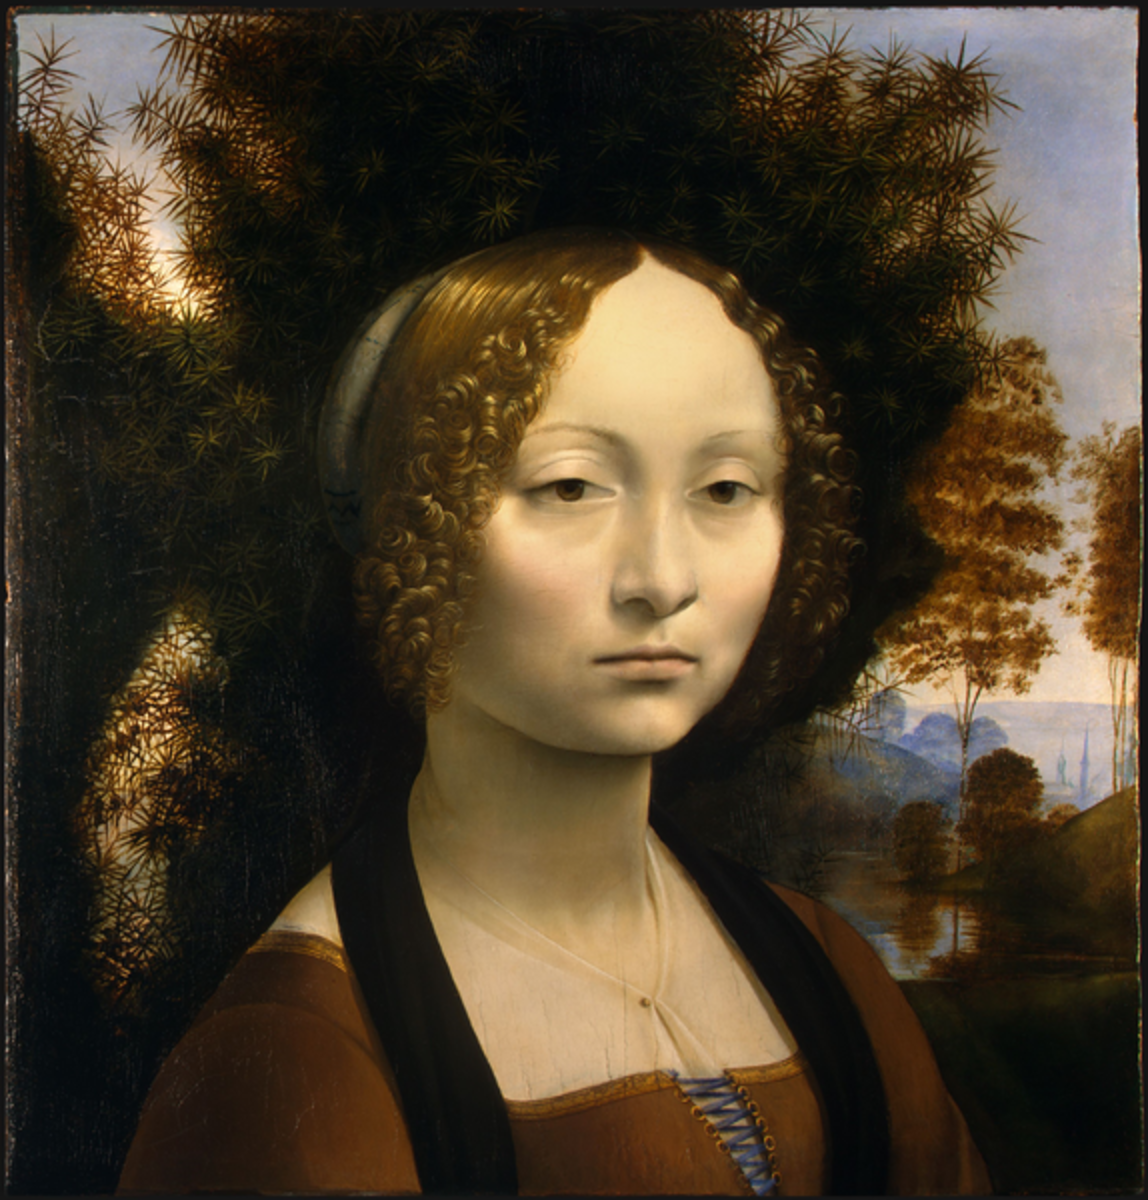 L. da Vinci, Portrait of Ginevra Benci (a. 1475), Washington National Gallery